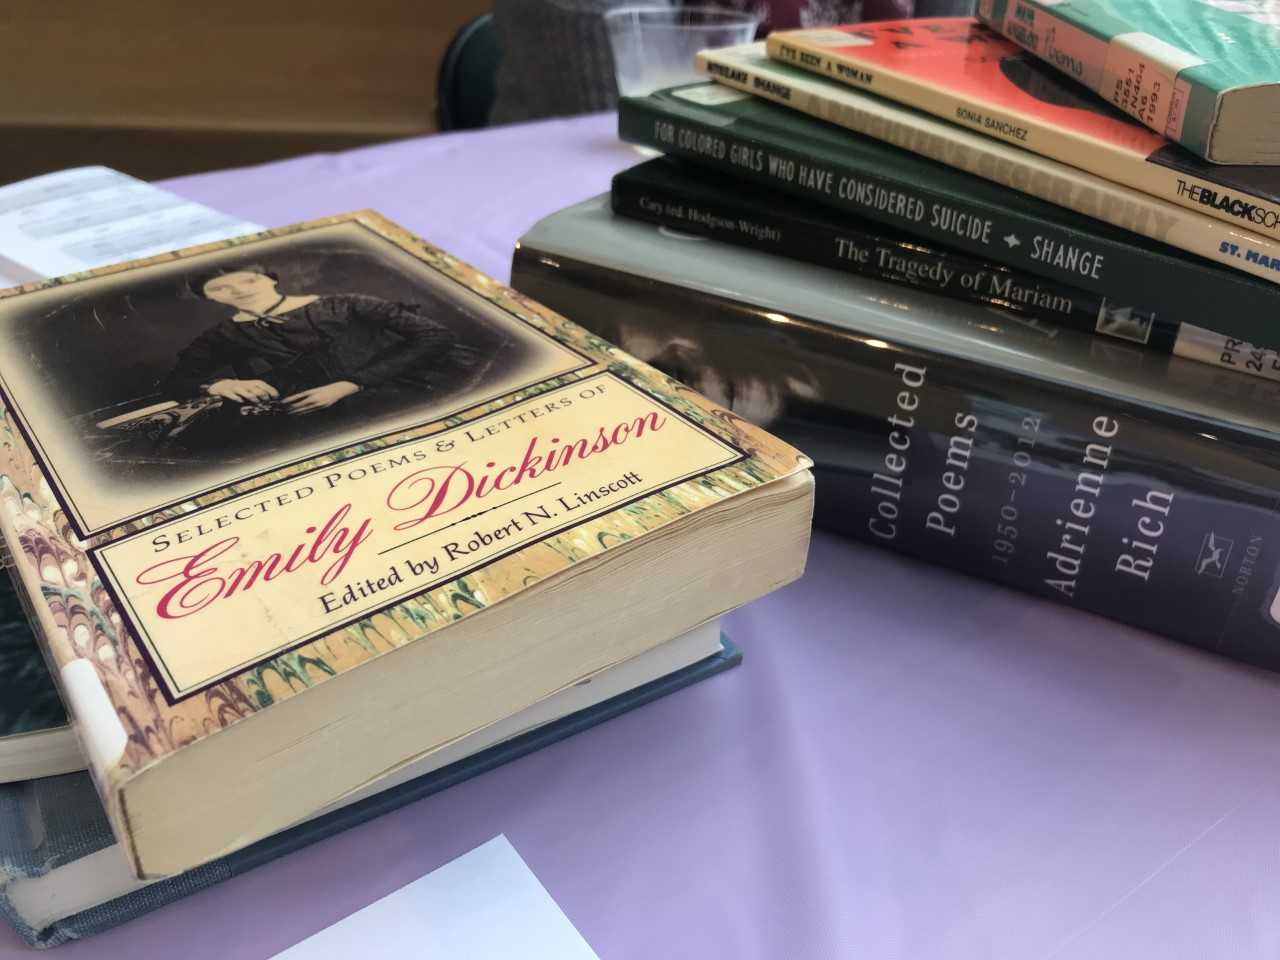 MU Reads' 'book tasting' had books by multiple female authors in an effort to celebrate Women's History Month on campus.